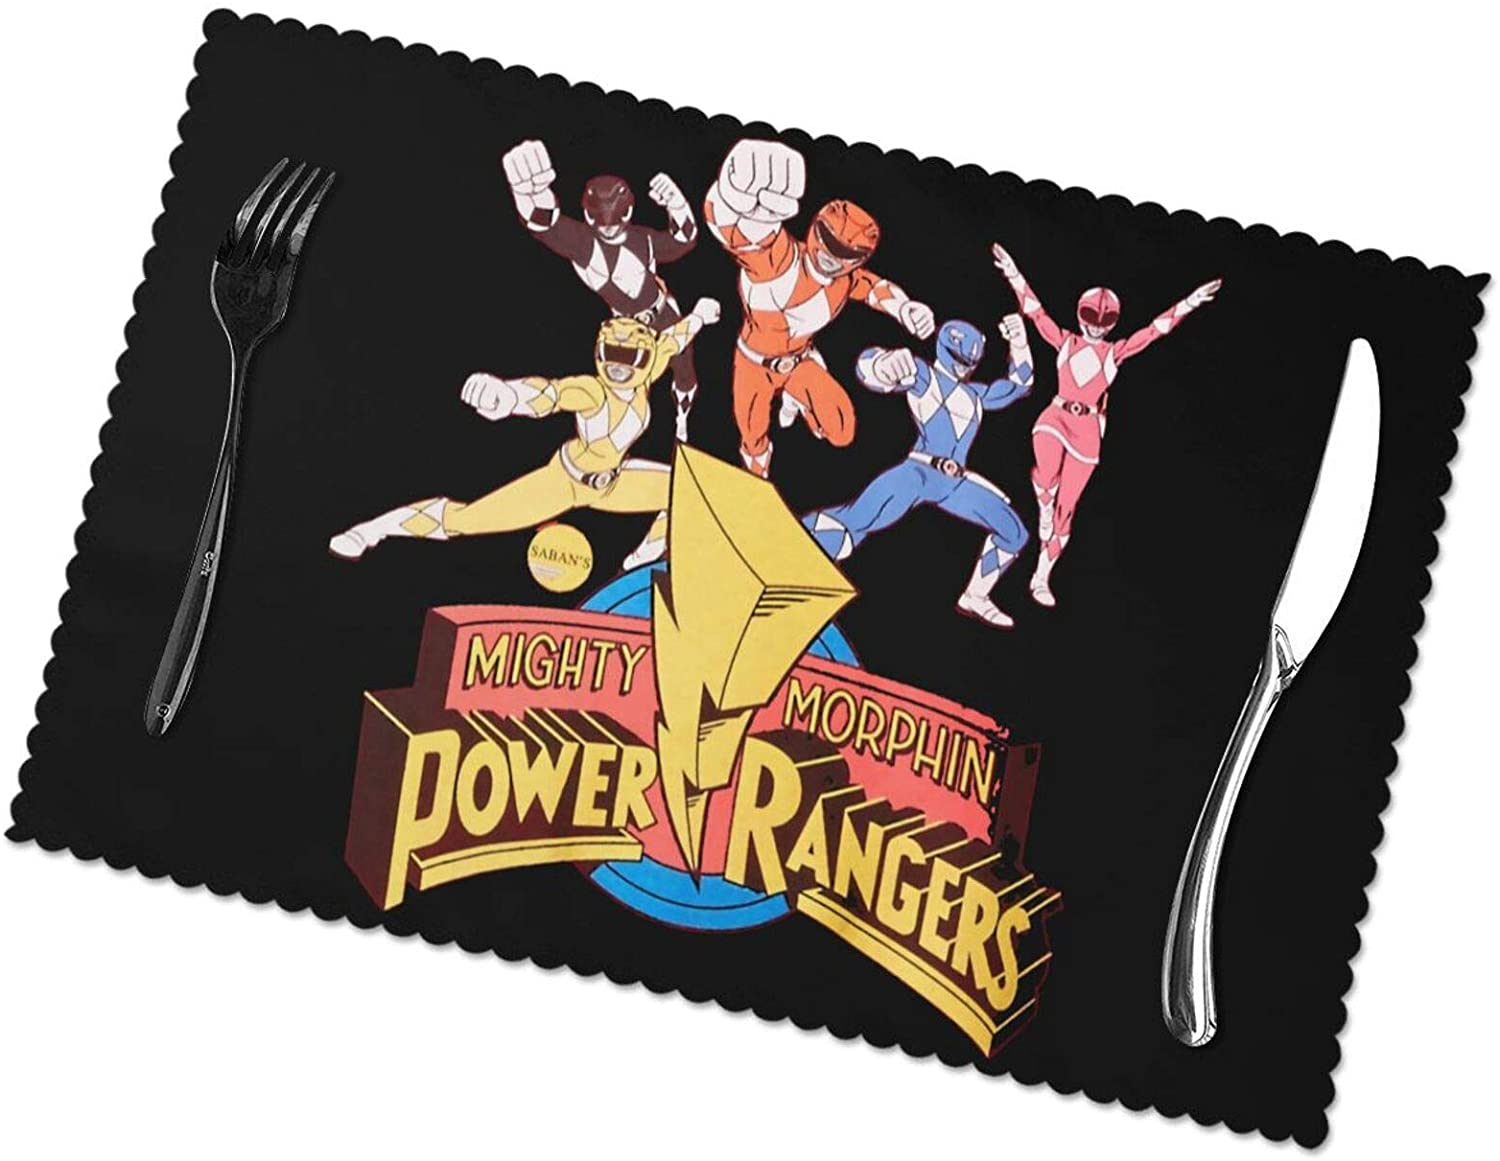 Shanion Power Rangers Placemats, Stain Resistant Anti-Skid Washable Table Mats Placemats, Set of 6